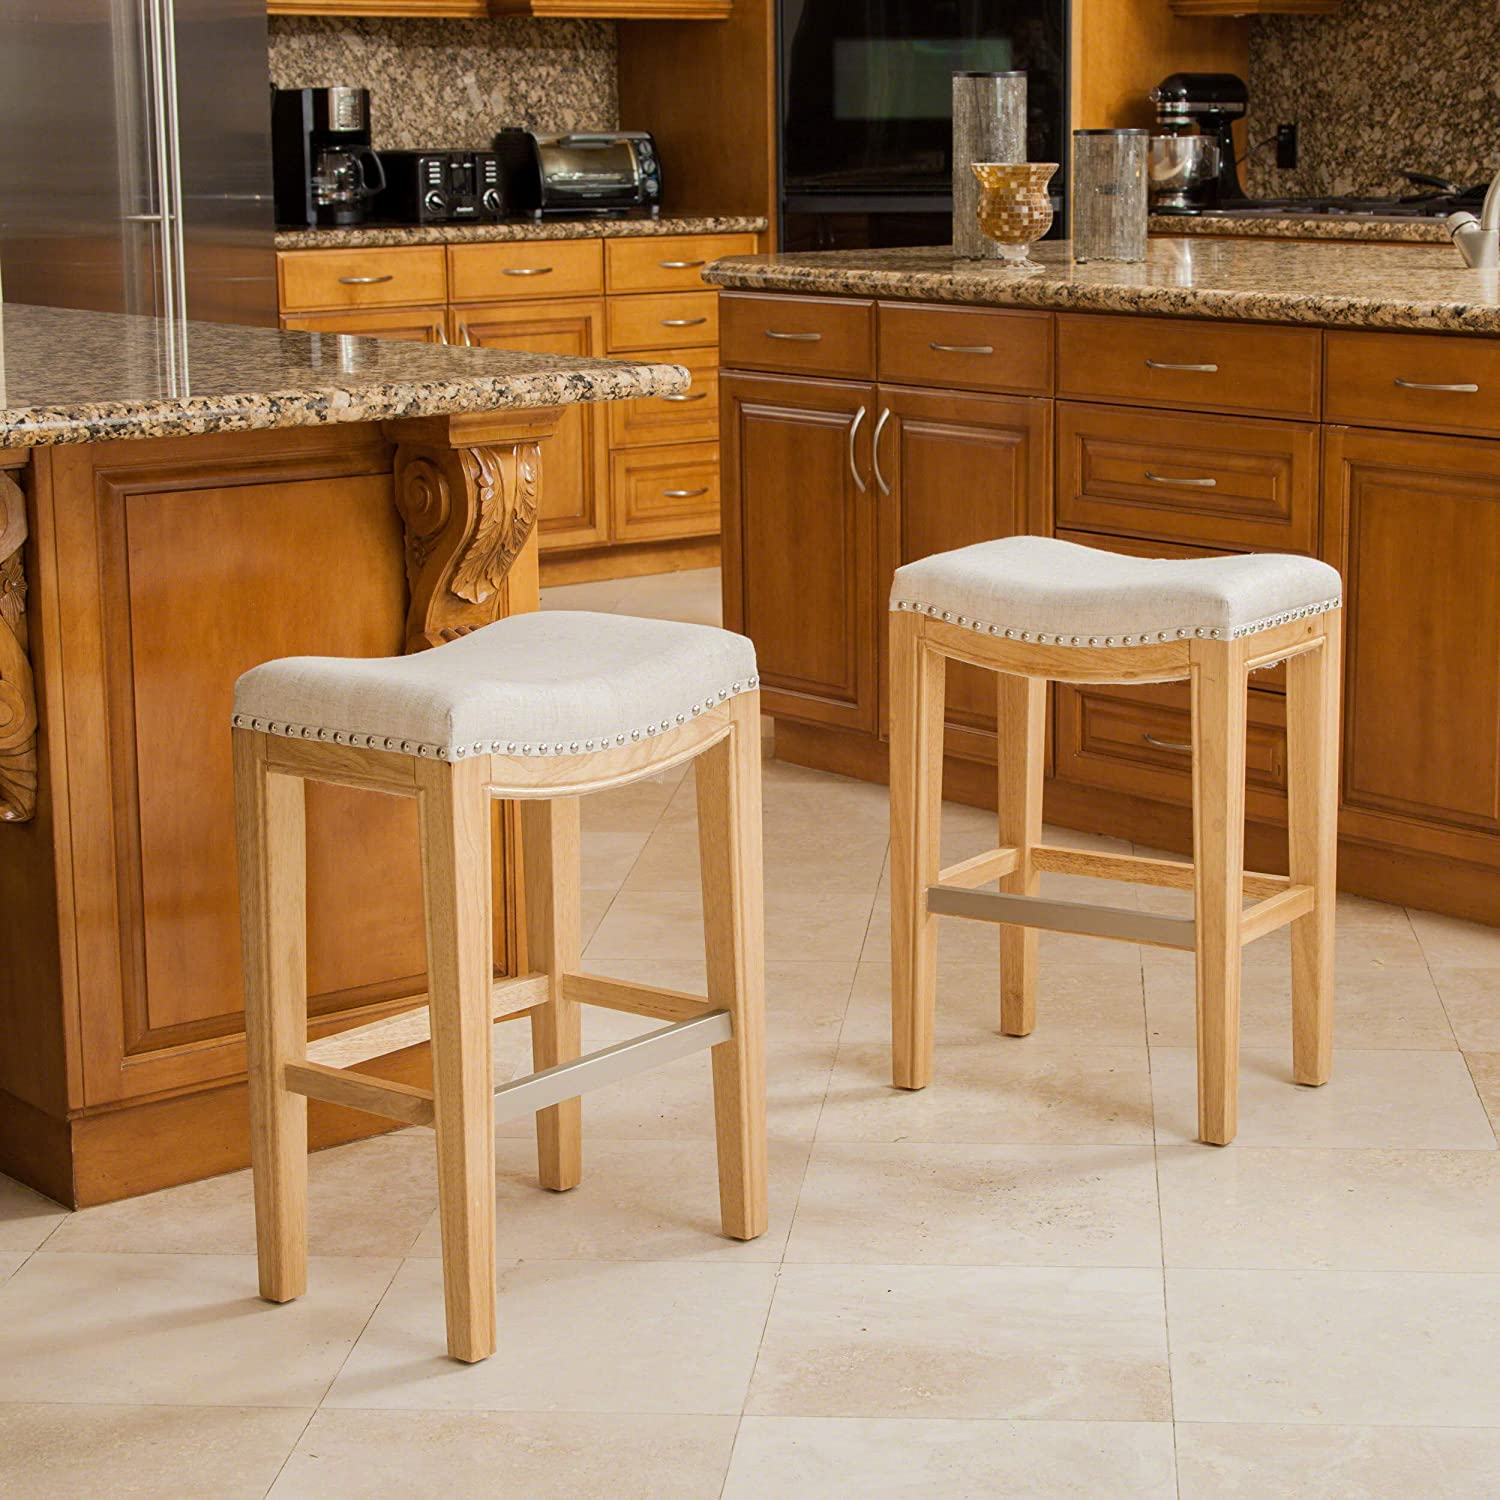 Christopher Knight Home 237492 Jaeden Beige Backless Counter Stool Set of 2 , BrownWhite